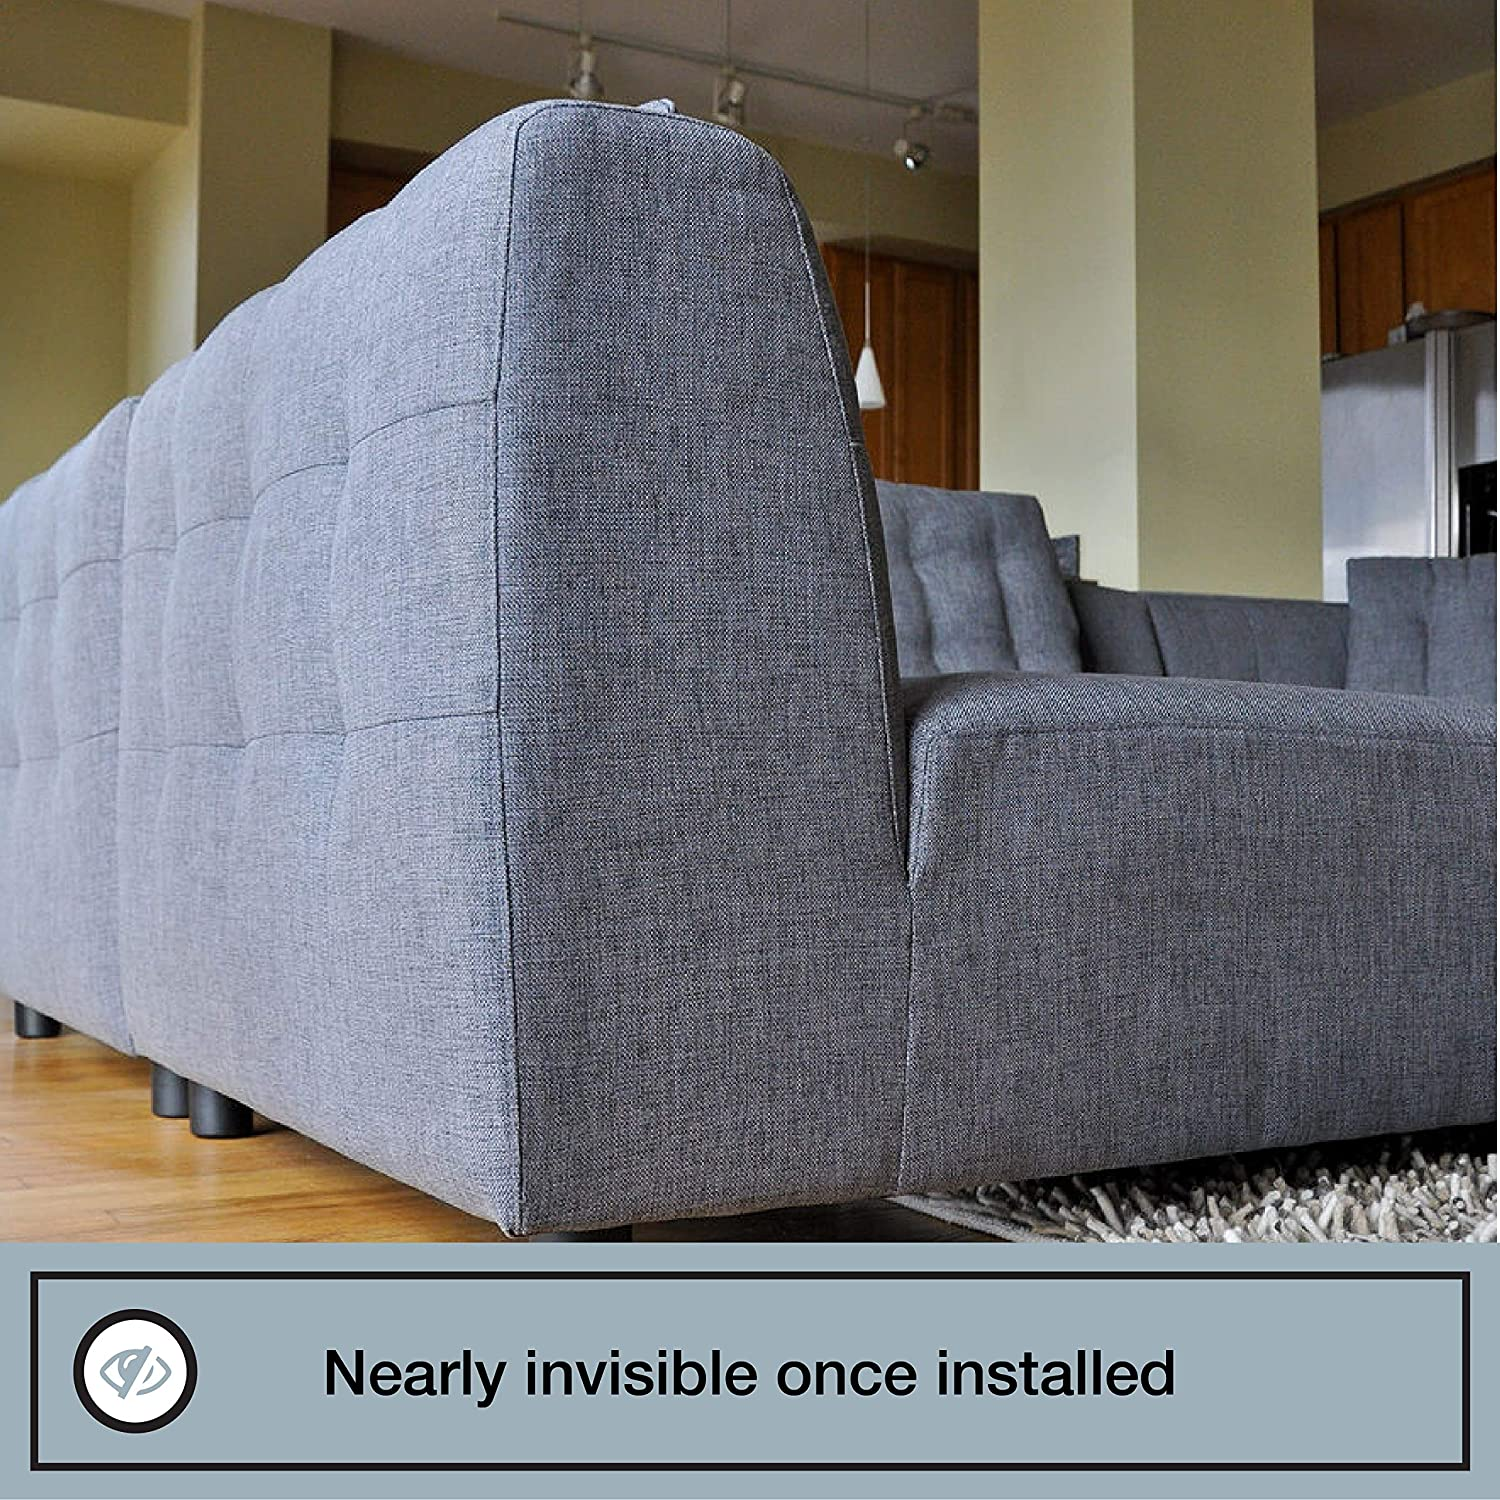 Super Couch Clamp Sectional Connectors For Sliding Sofas Prevent Floor Scratches And Big Gaps In Your Couch With No Tools Or Invasive Install 4 Pack Uwap Interior Chair Design Uwaporg